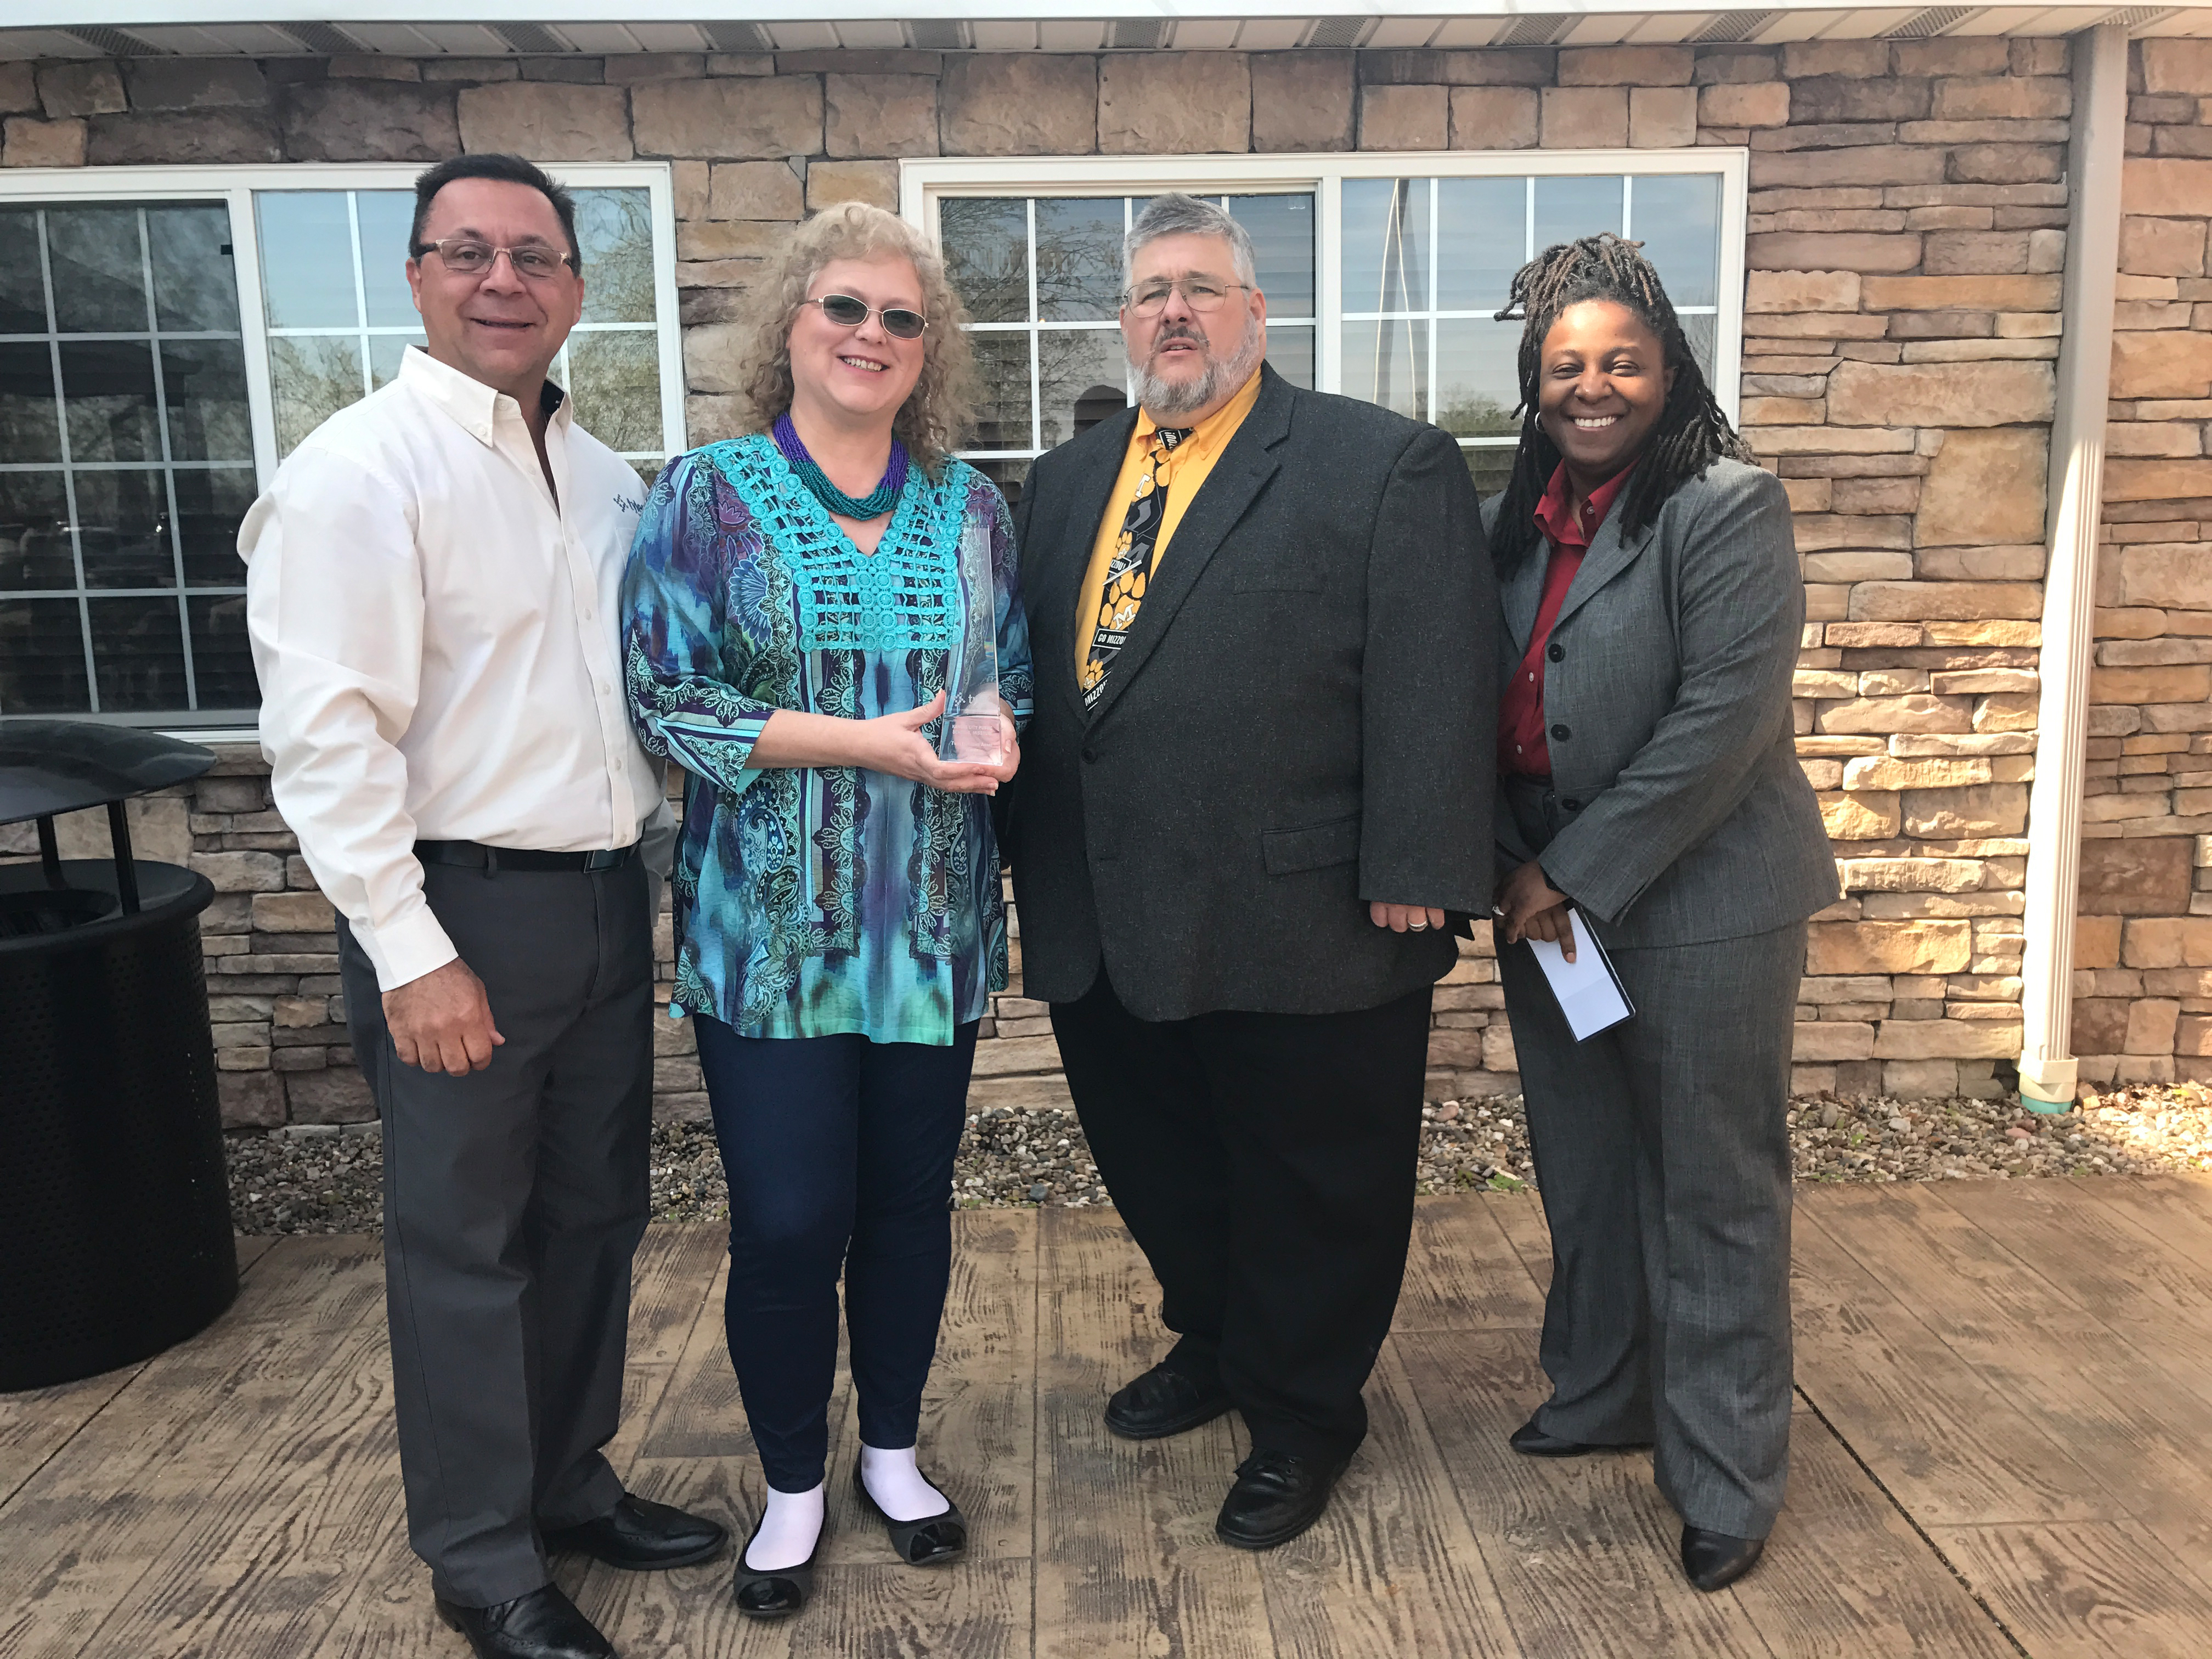 Representatives from Kansas City Public Schools, Missouri, accept their Excellence Award at the Tyler SIS user conference in Columbia, Missouri. (Photo: Business Wire)